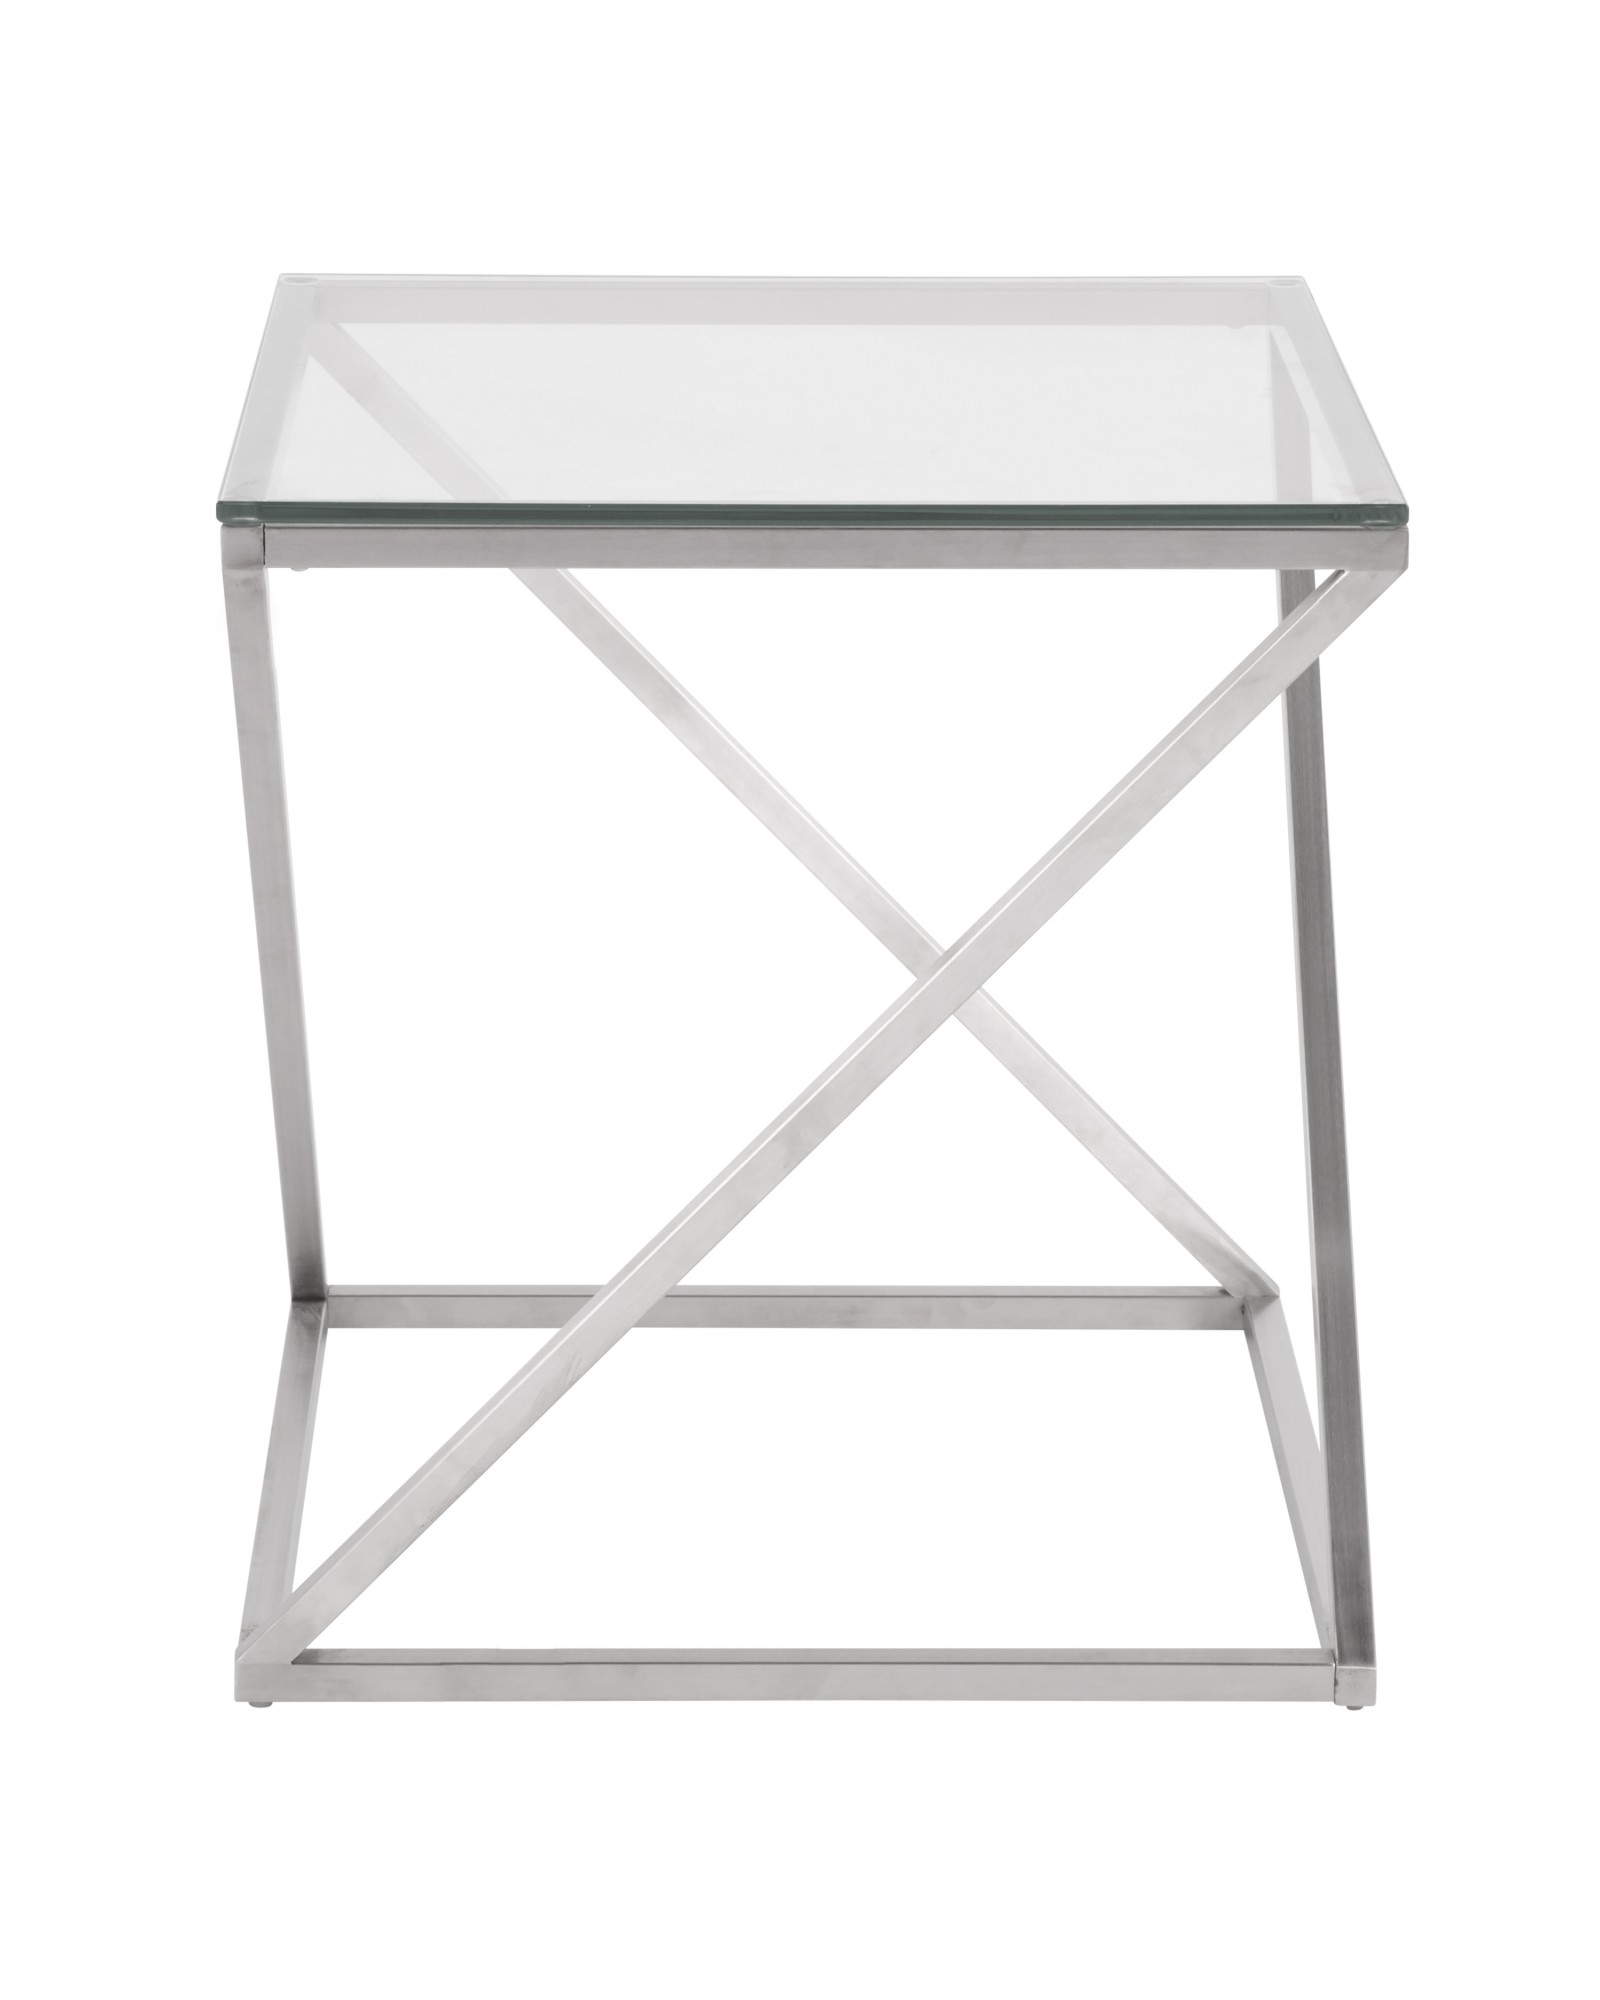 4Z Contemporary End Table in Stainless Steel with Clear Glass